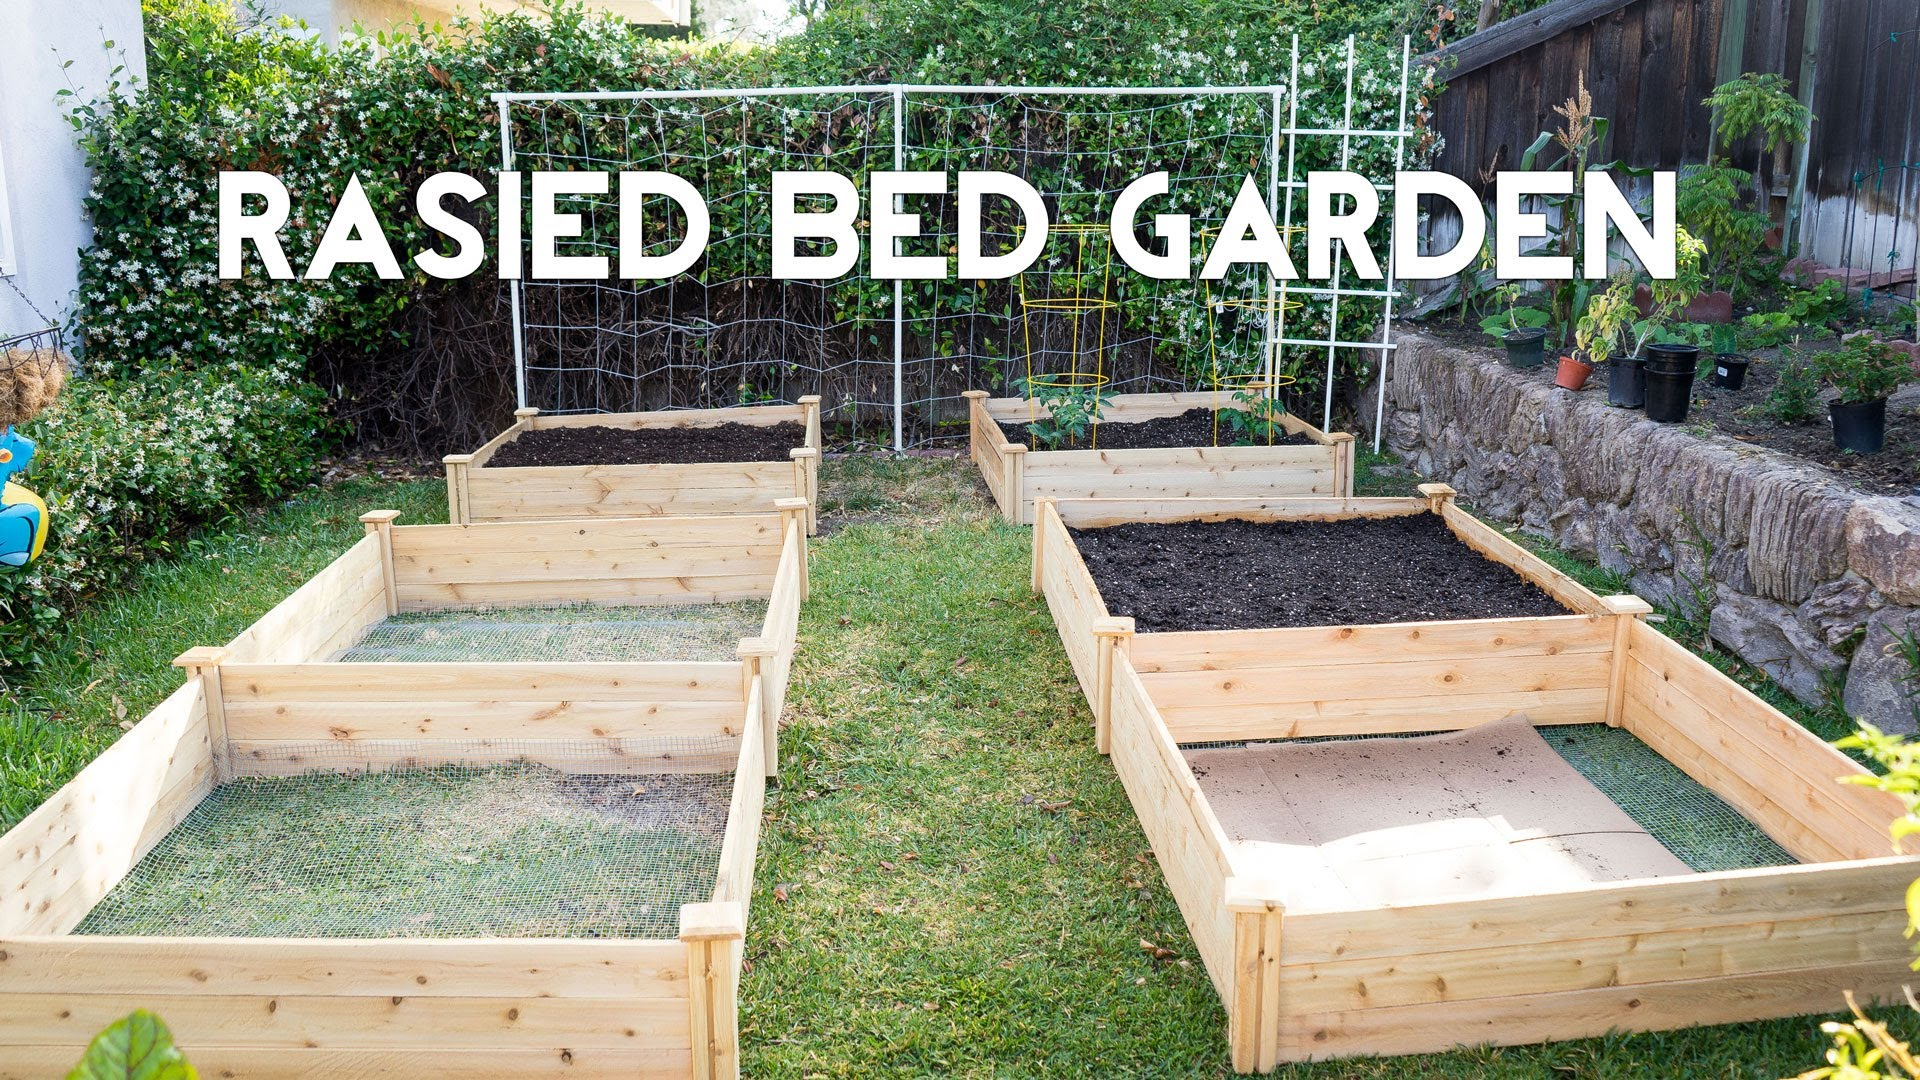 raised bed garden raised garden beds - how to start gardening with raised beds - youtube RYVQKKM